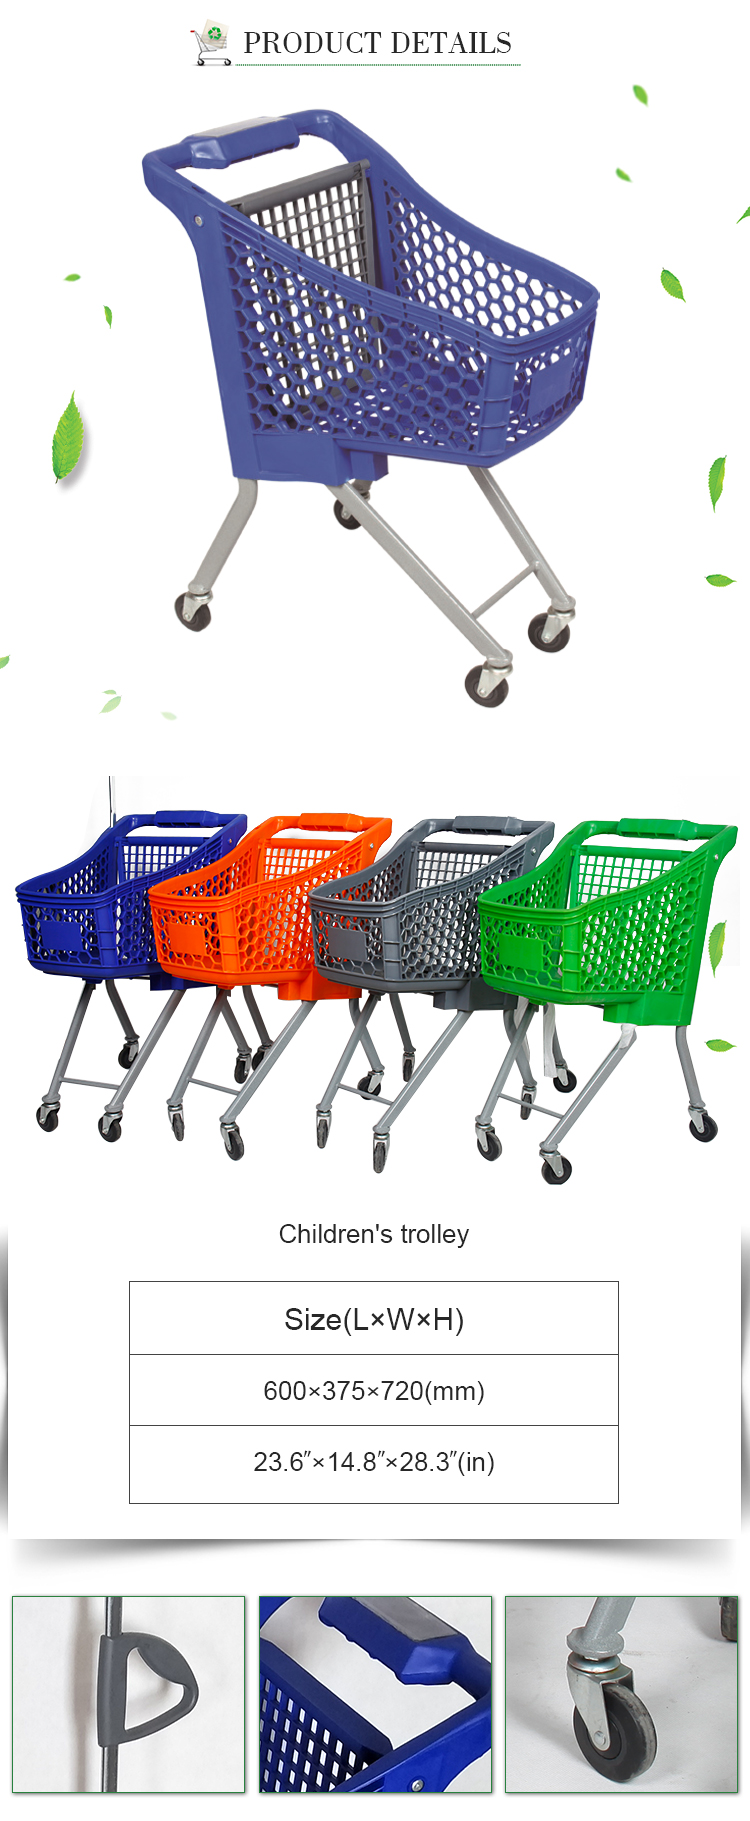 Mall kids shopping trolley smart cart trolley with a flag